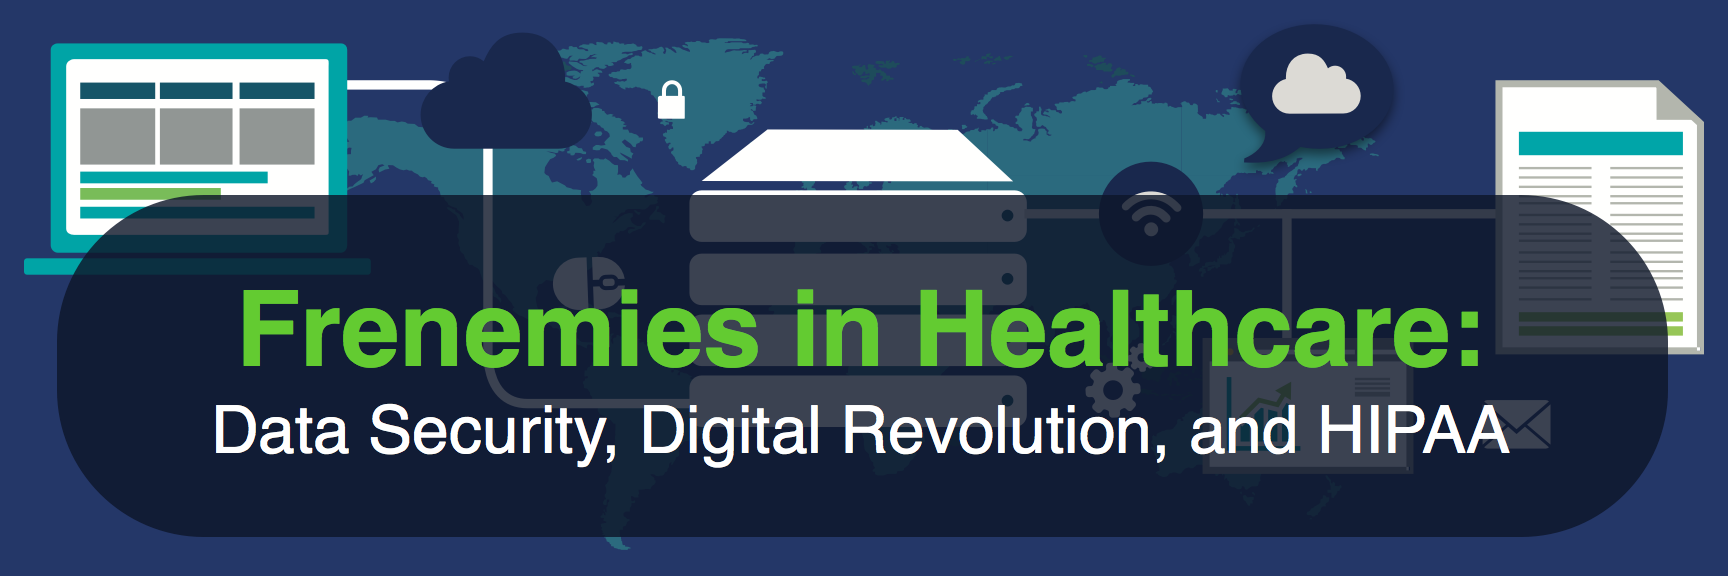 data security digital revolution and HIPAA